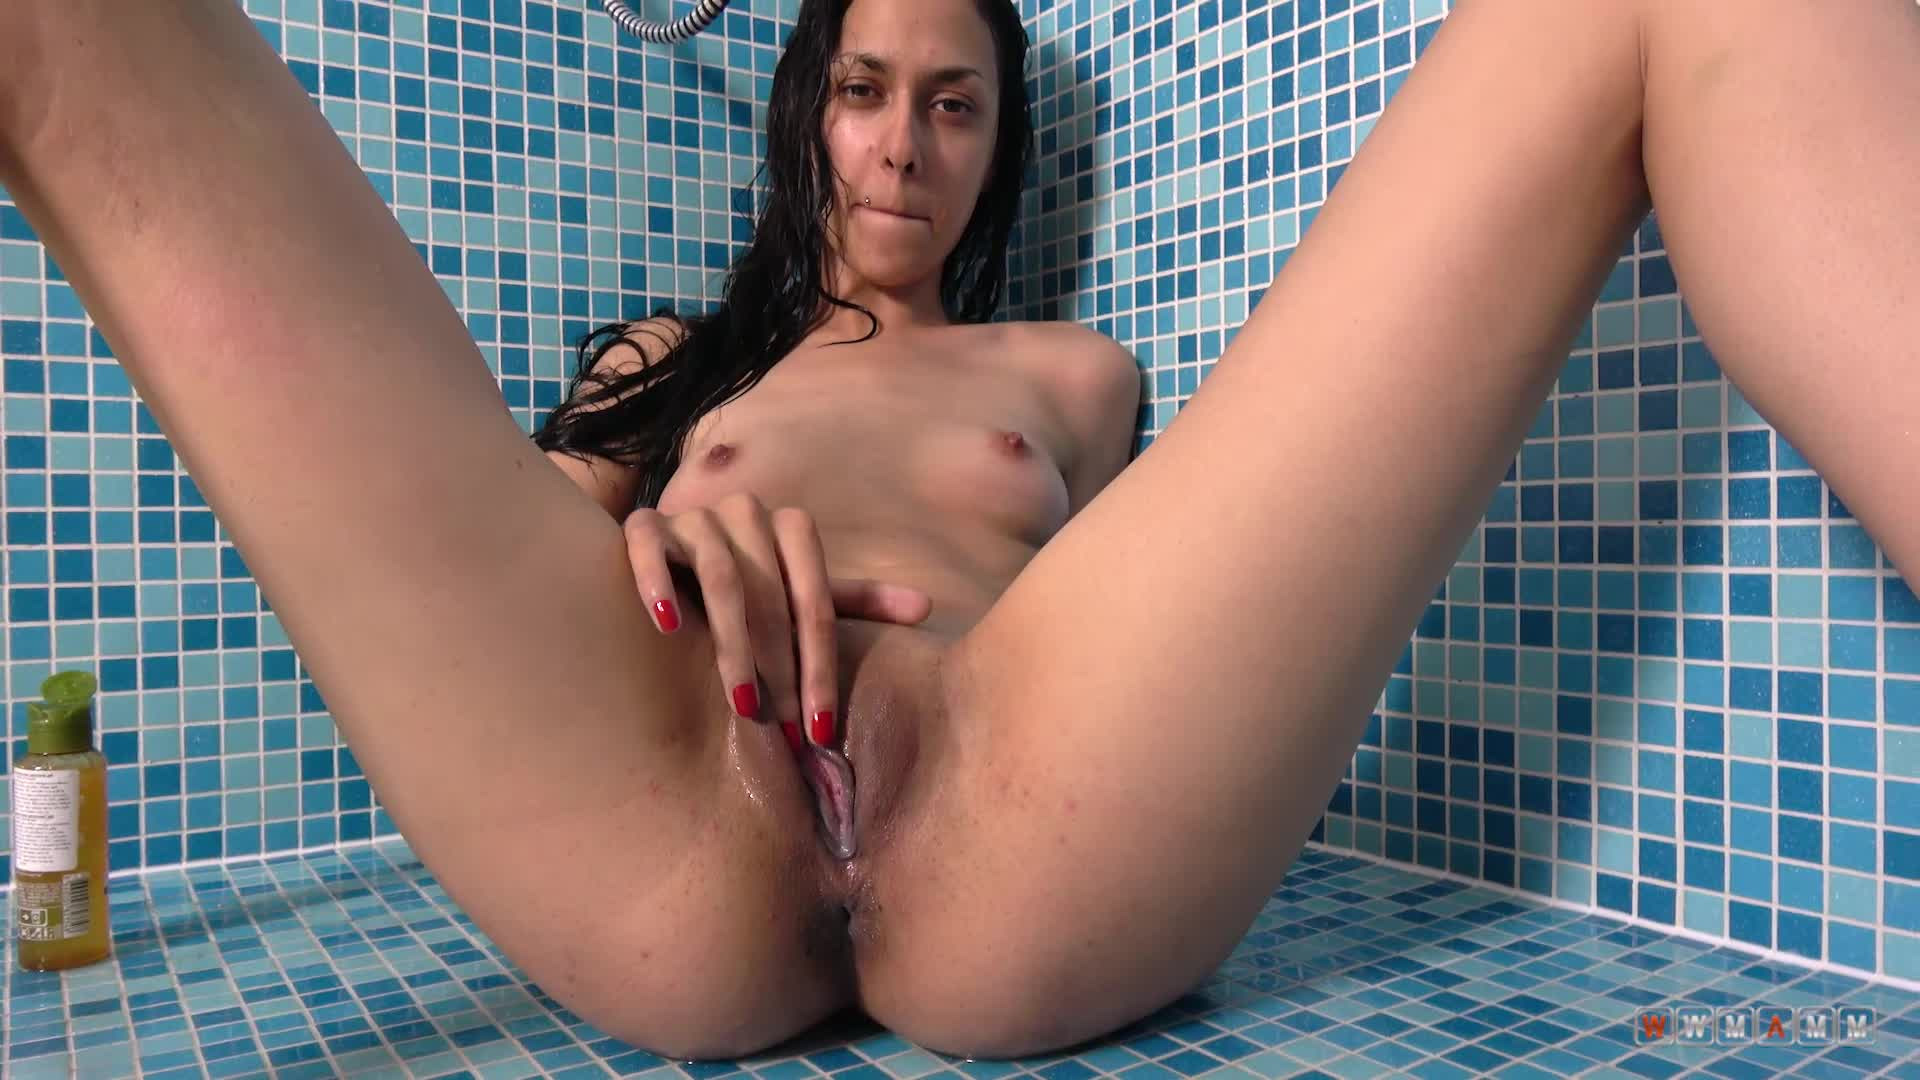 Finally She Found A Place Where She Can Be Alone And Masturbate